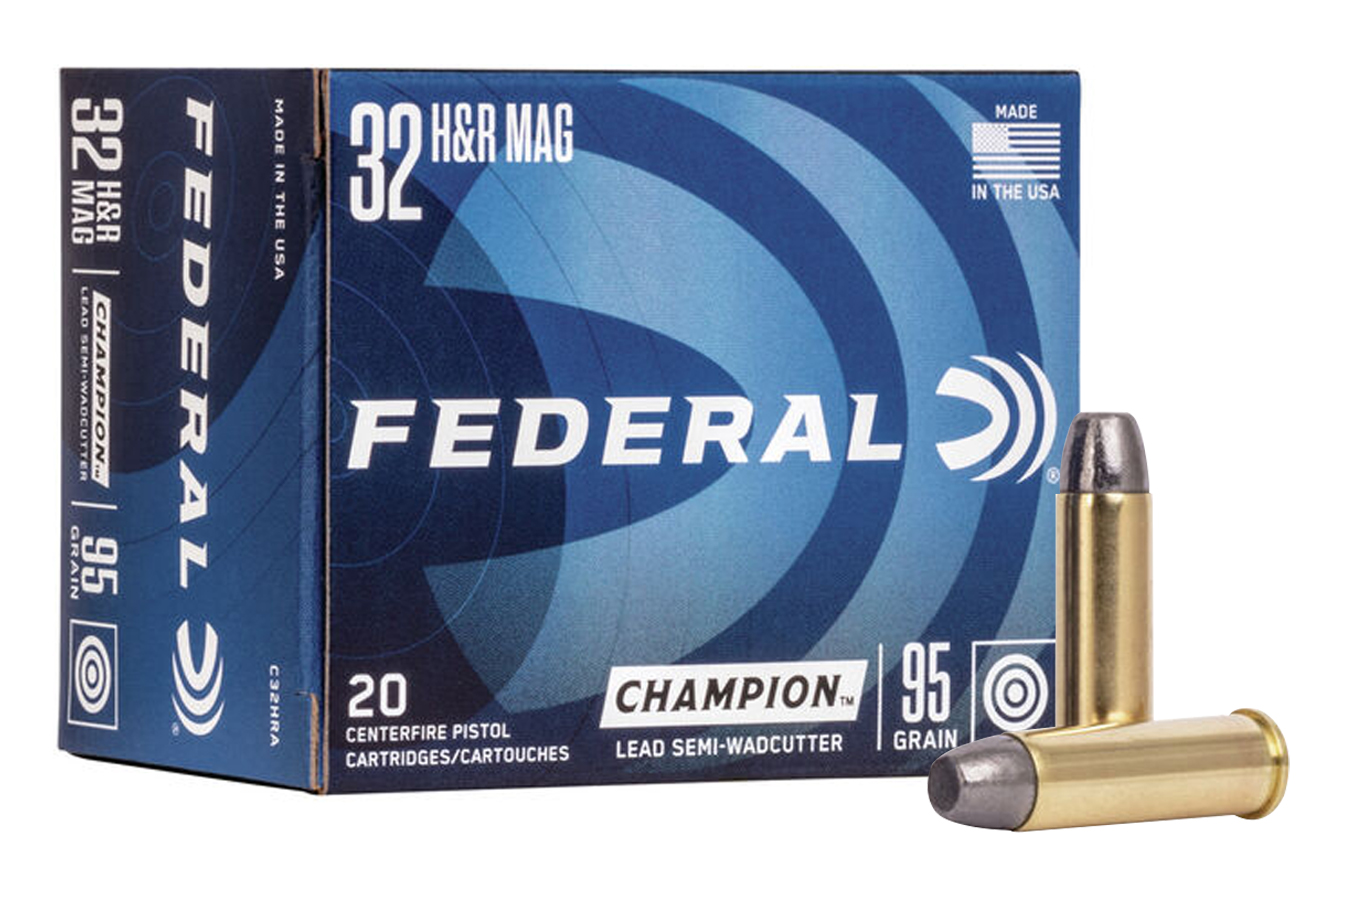 32 HR MAG 95 GR LEAD SEMI WADCUTTER CHAMPION